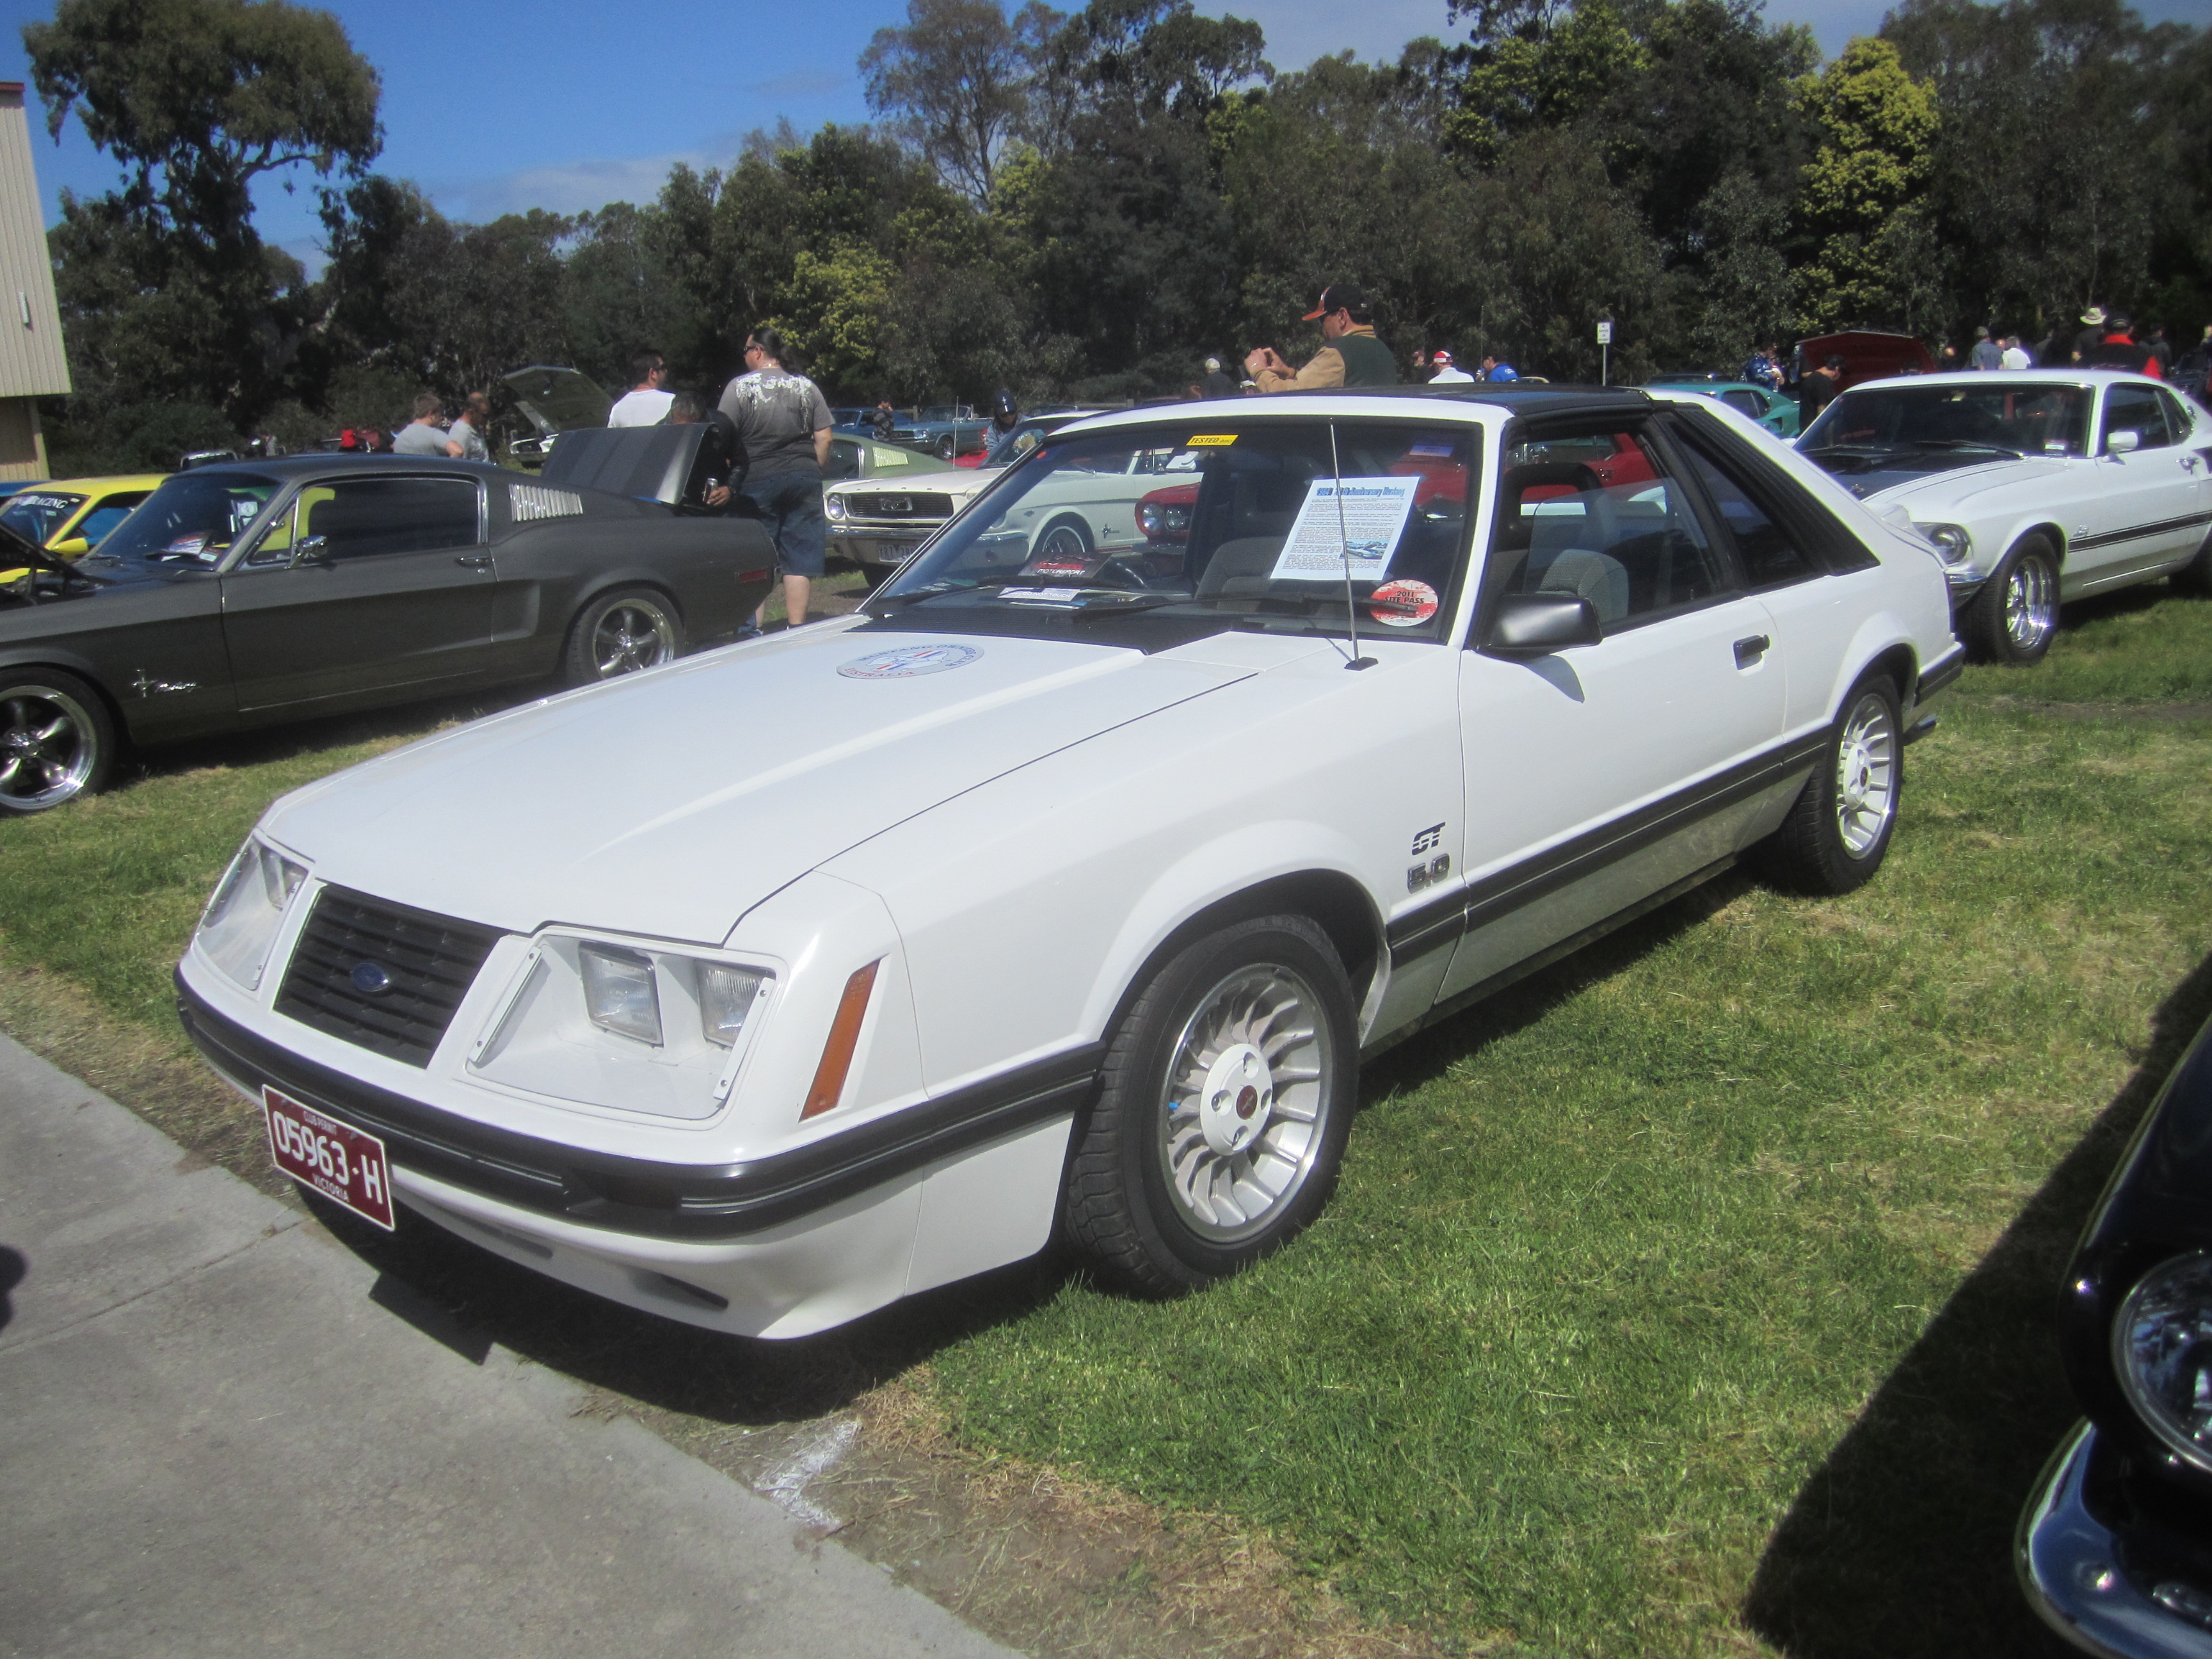 Picture of 1984 ford mustang gt350 exterior -  Ford Mustang 1984 13